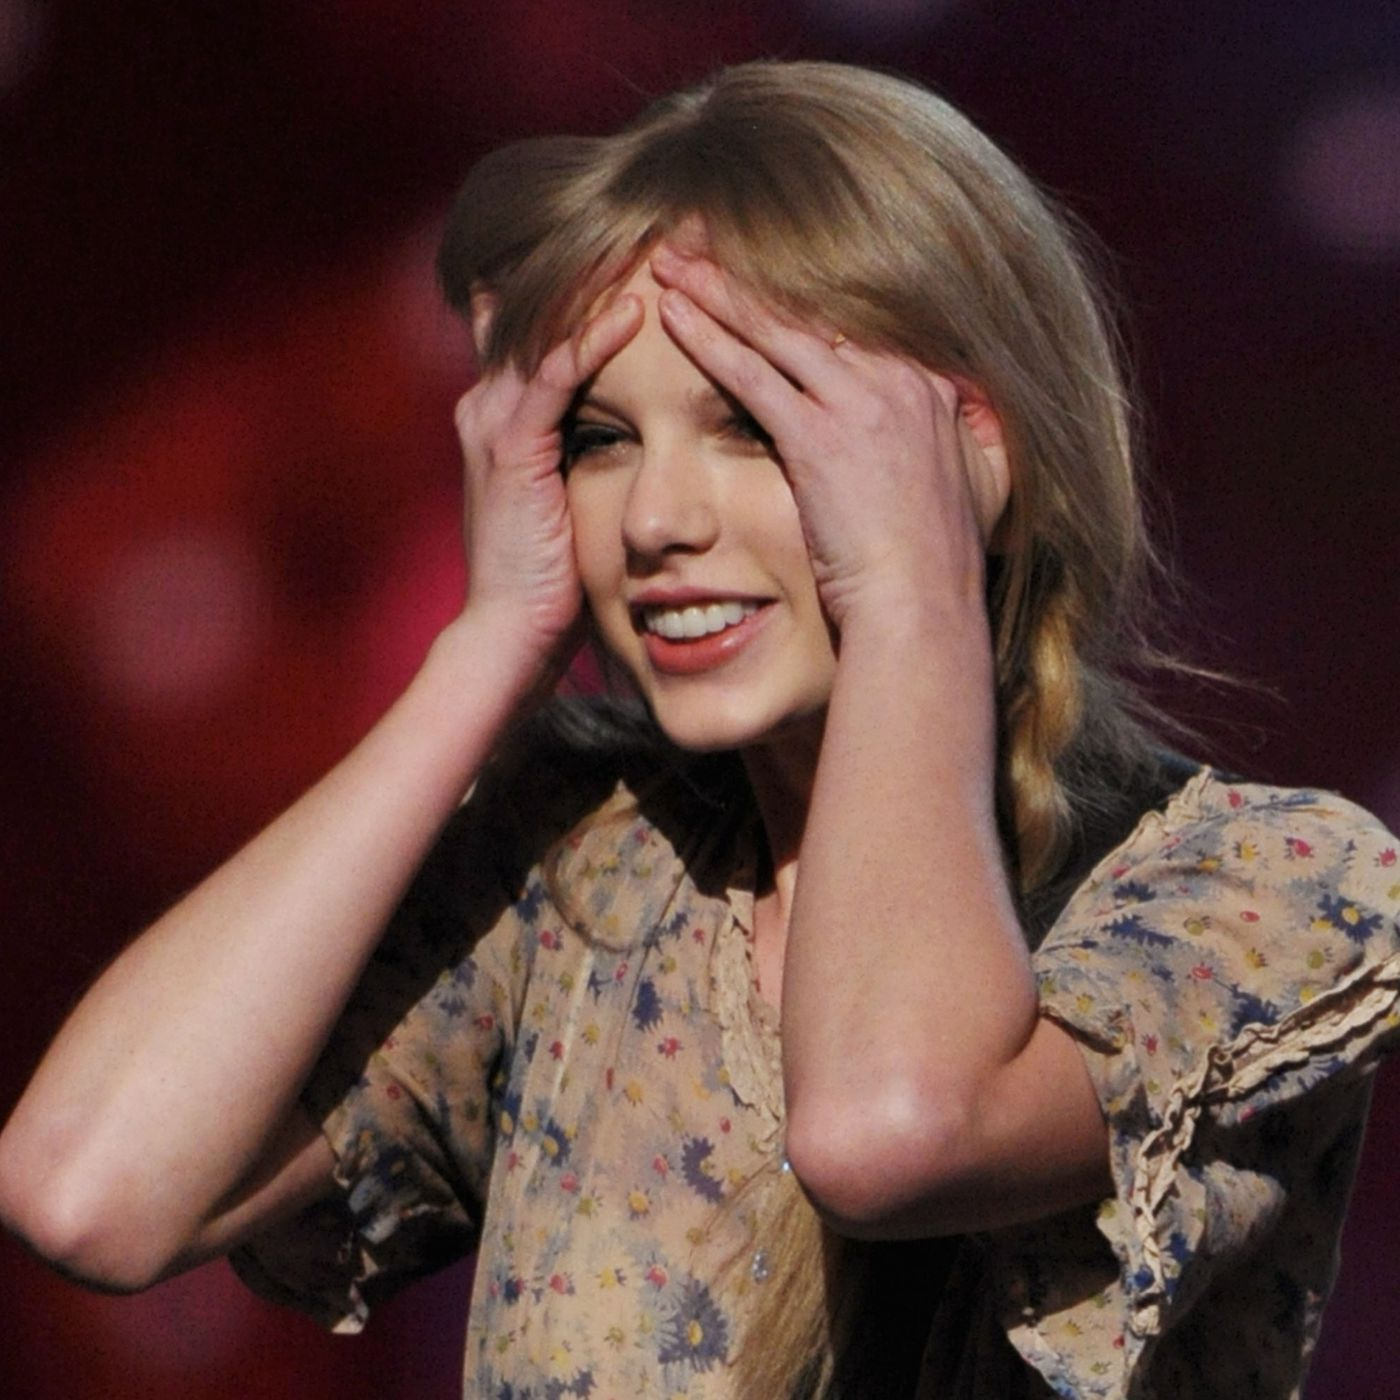 Taylor Swift Is Cold Blooded And Calculating That S What Makes Her A Great Pop Star Vox